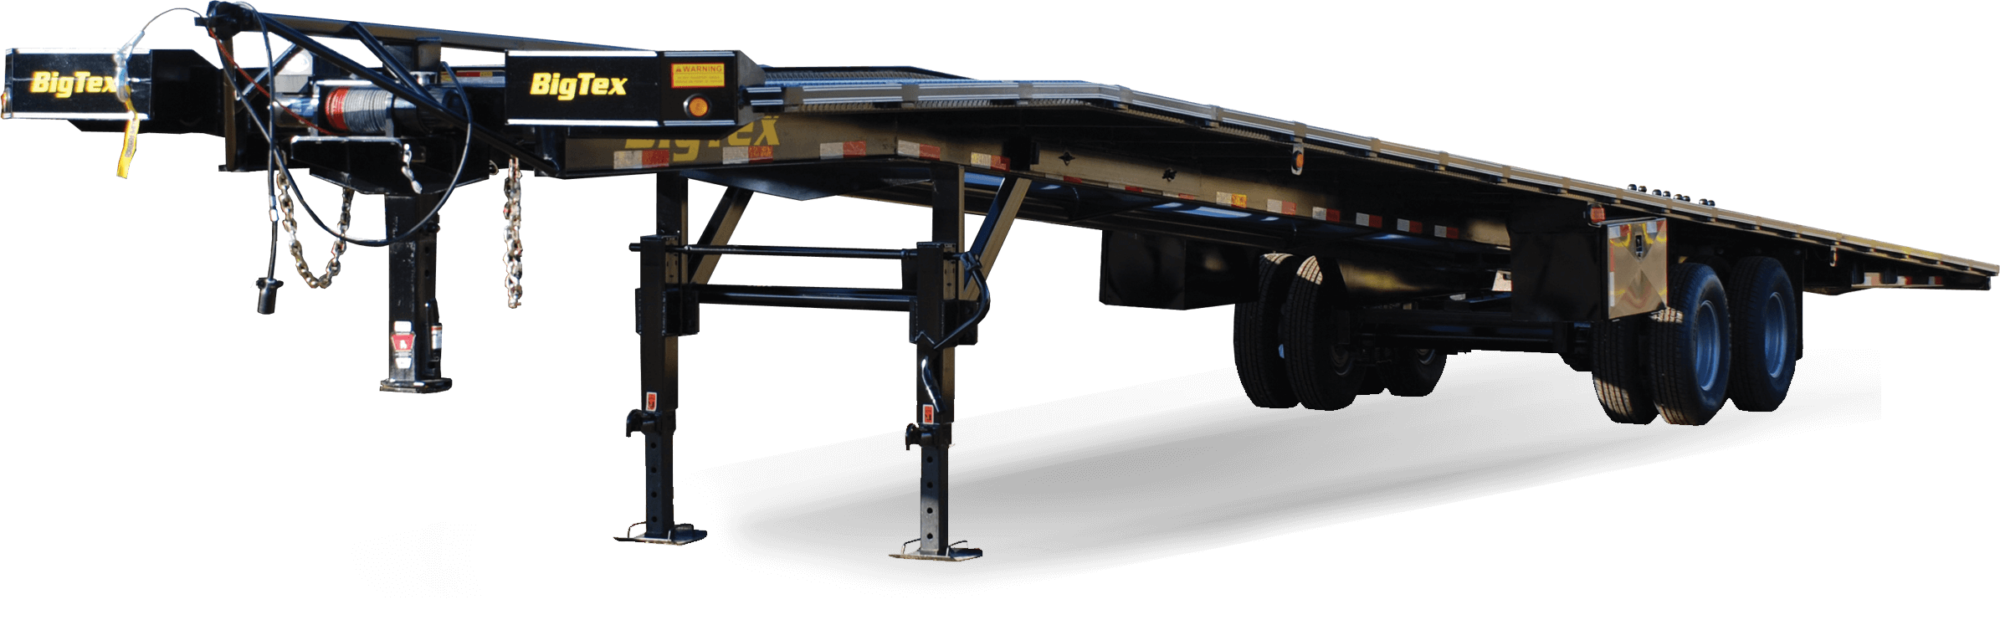 The 20AC Big Tex Gooseneck Auto Trailer is a Tandem Dual Gooseneck  Auto/Combo Transport from Big Tex Trailers. It is the best solution for  auto and trailer ...